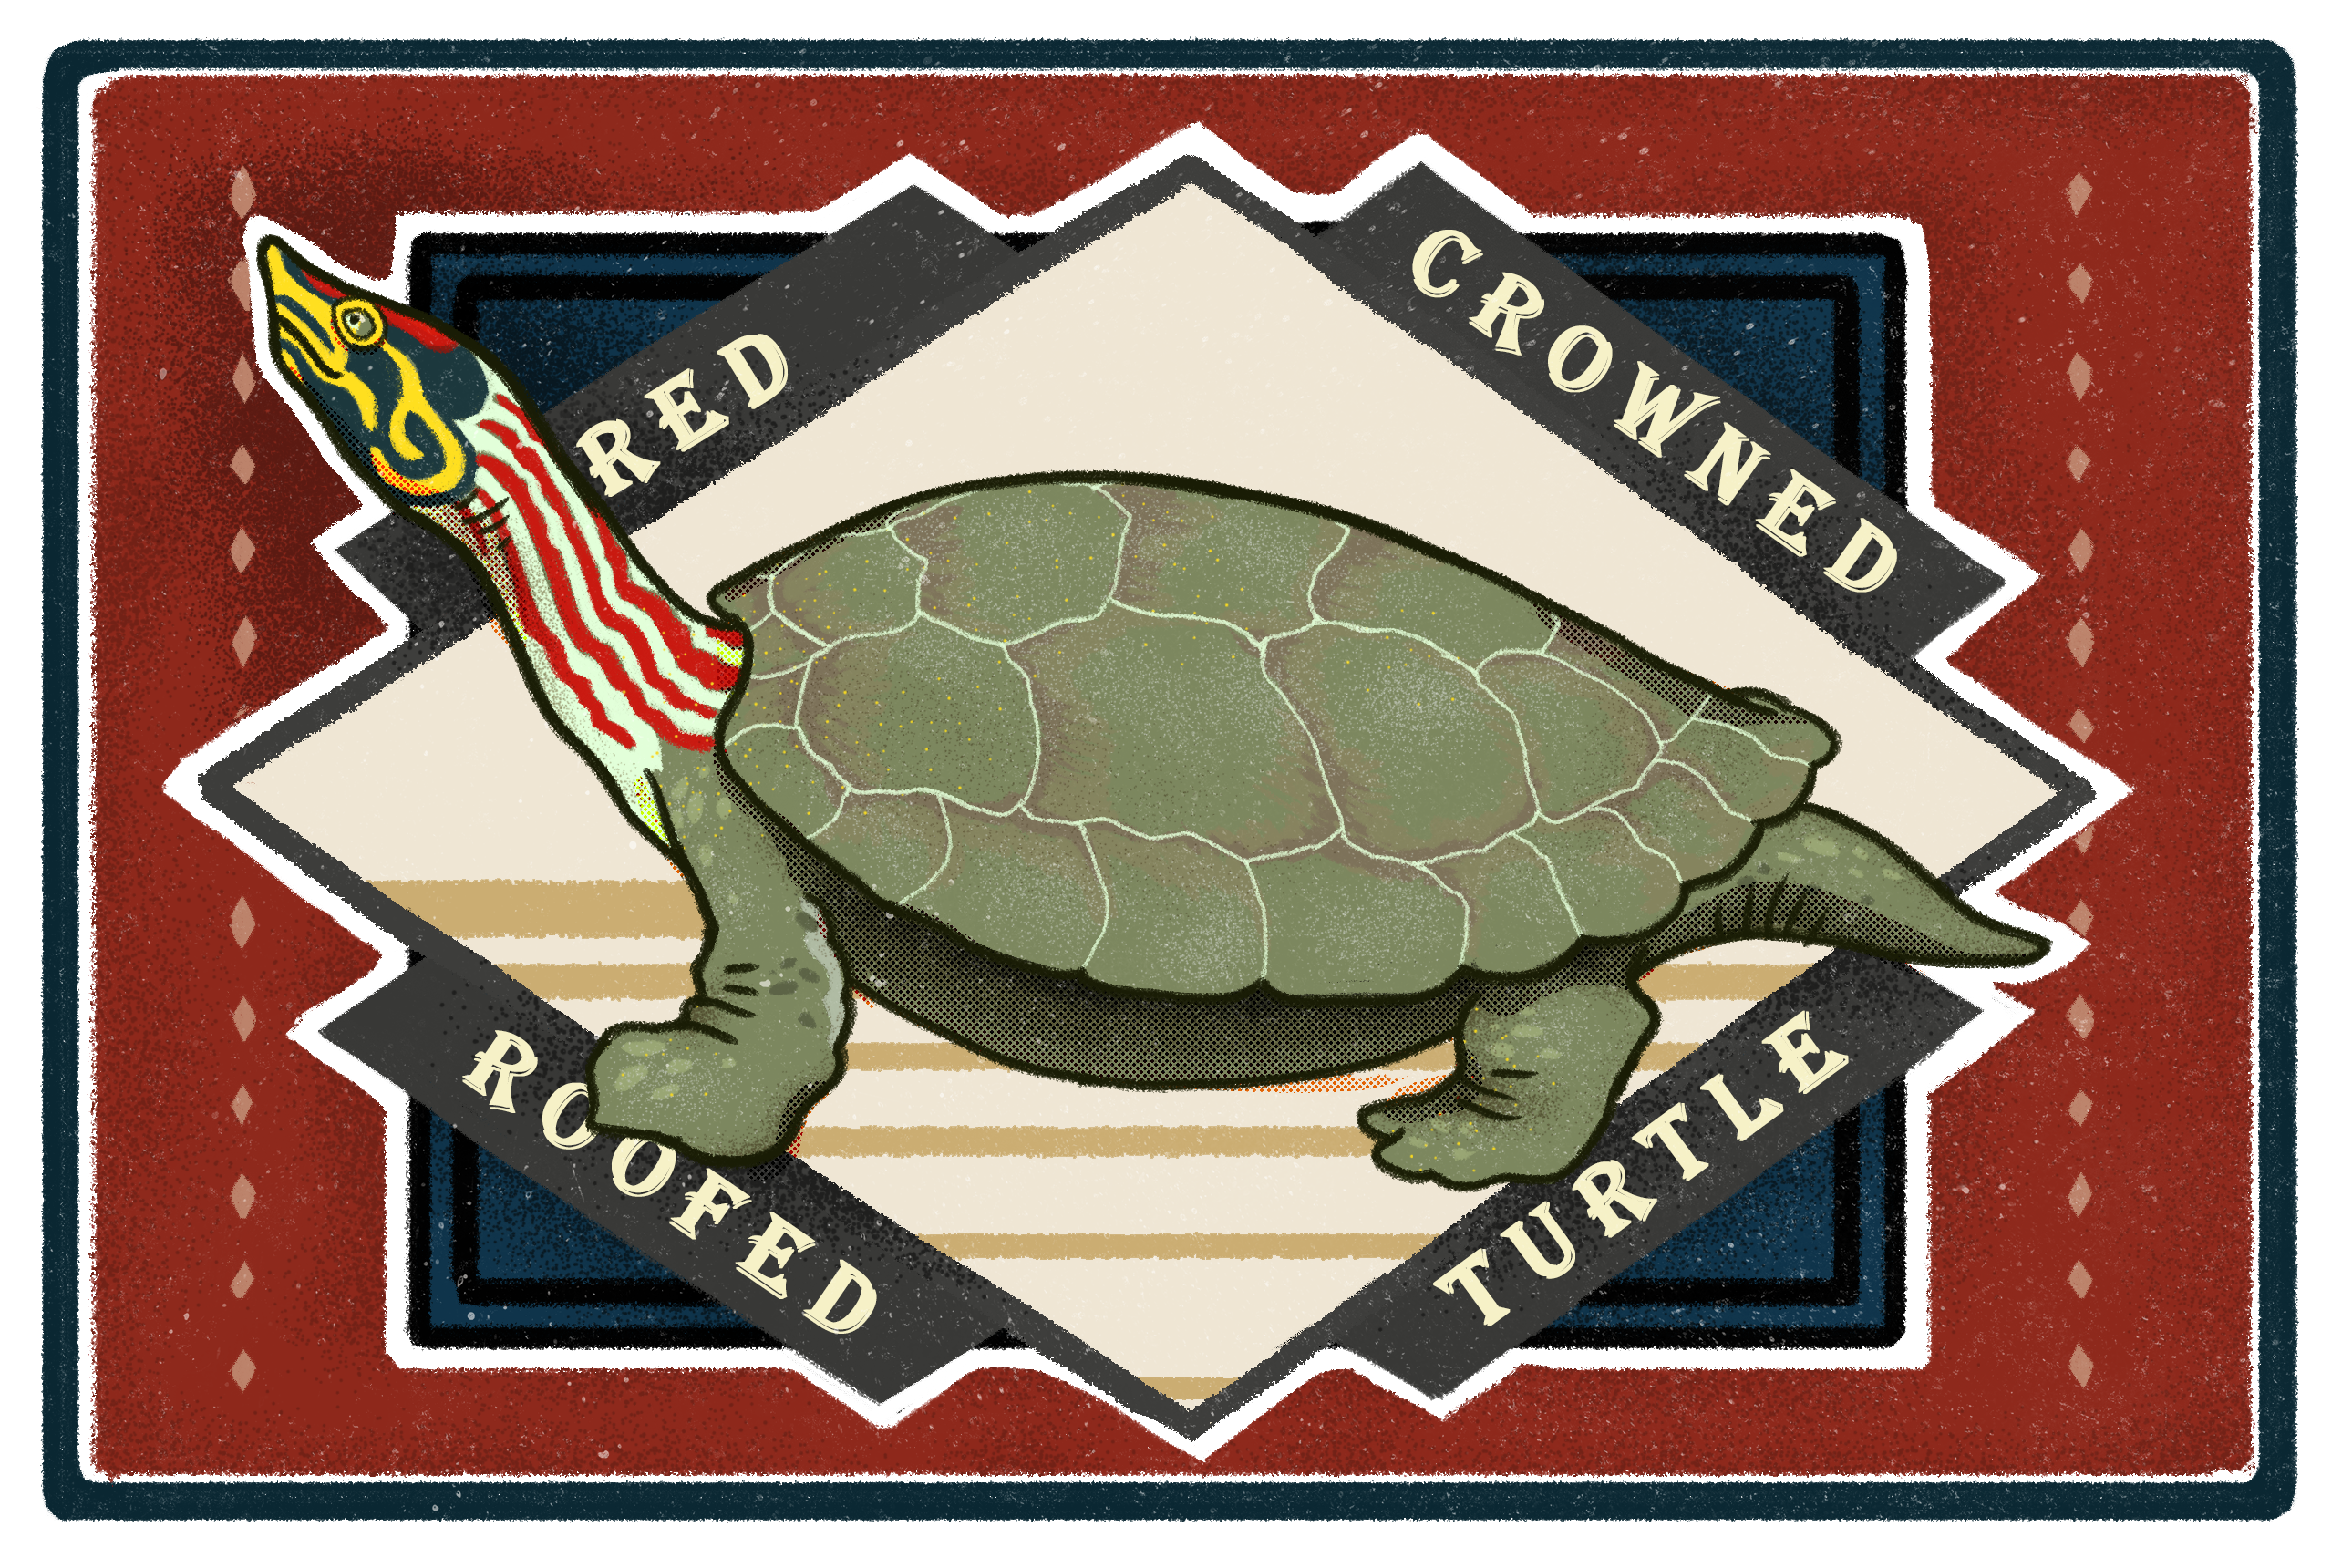 Illustration of a red-crowned roofed turtle by Kabini Amin